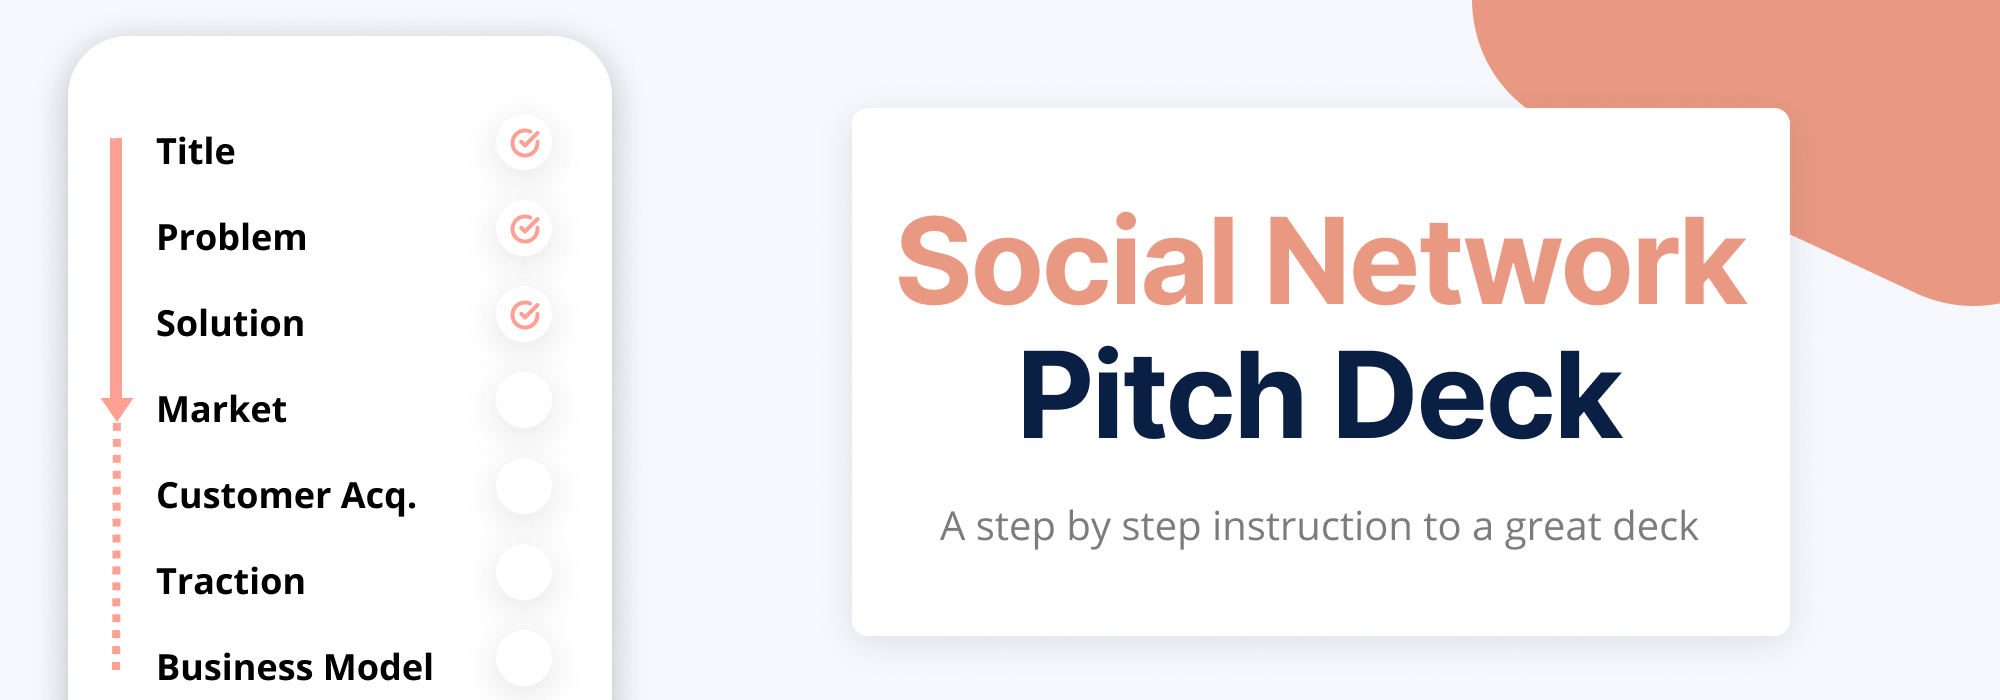 How to Create a Social Network Pitch Deck